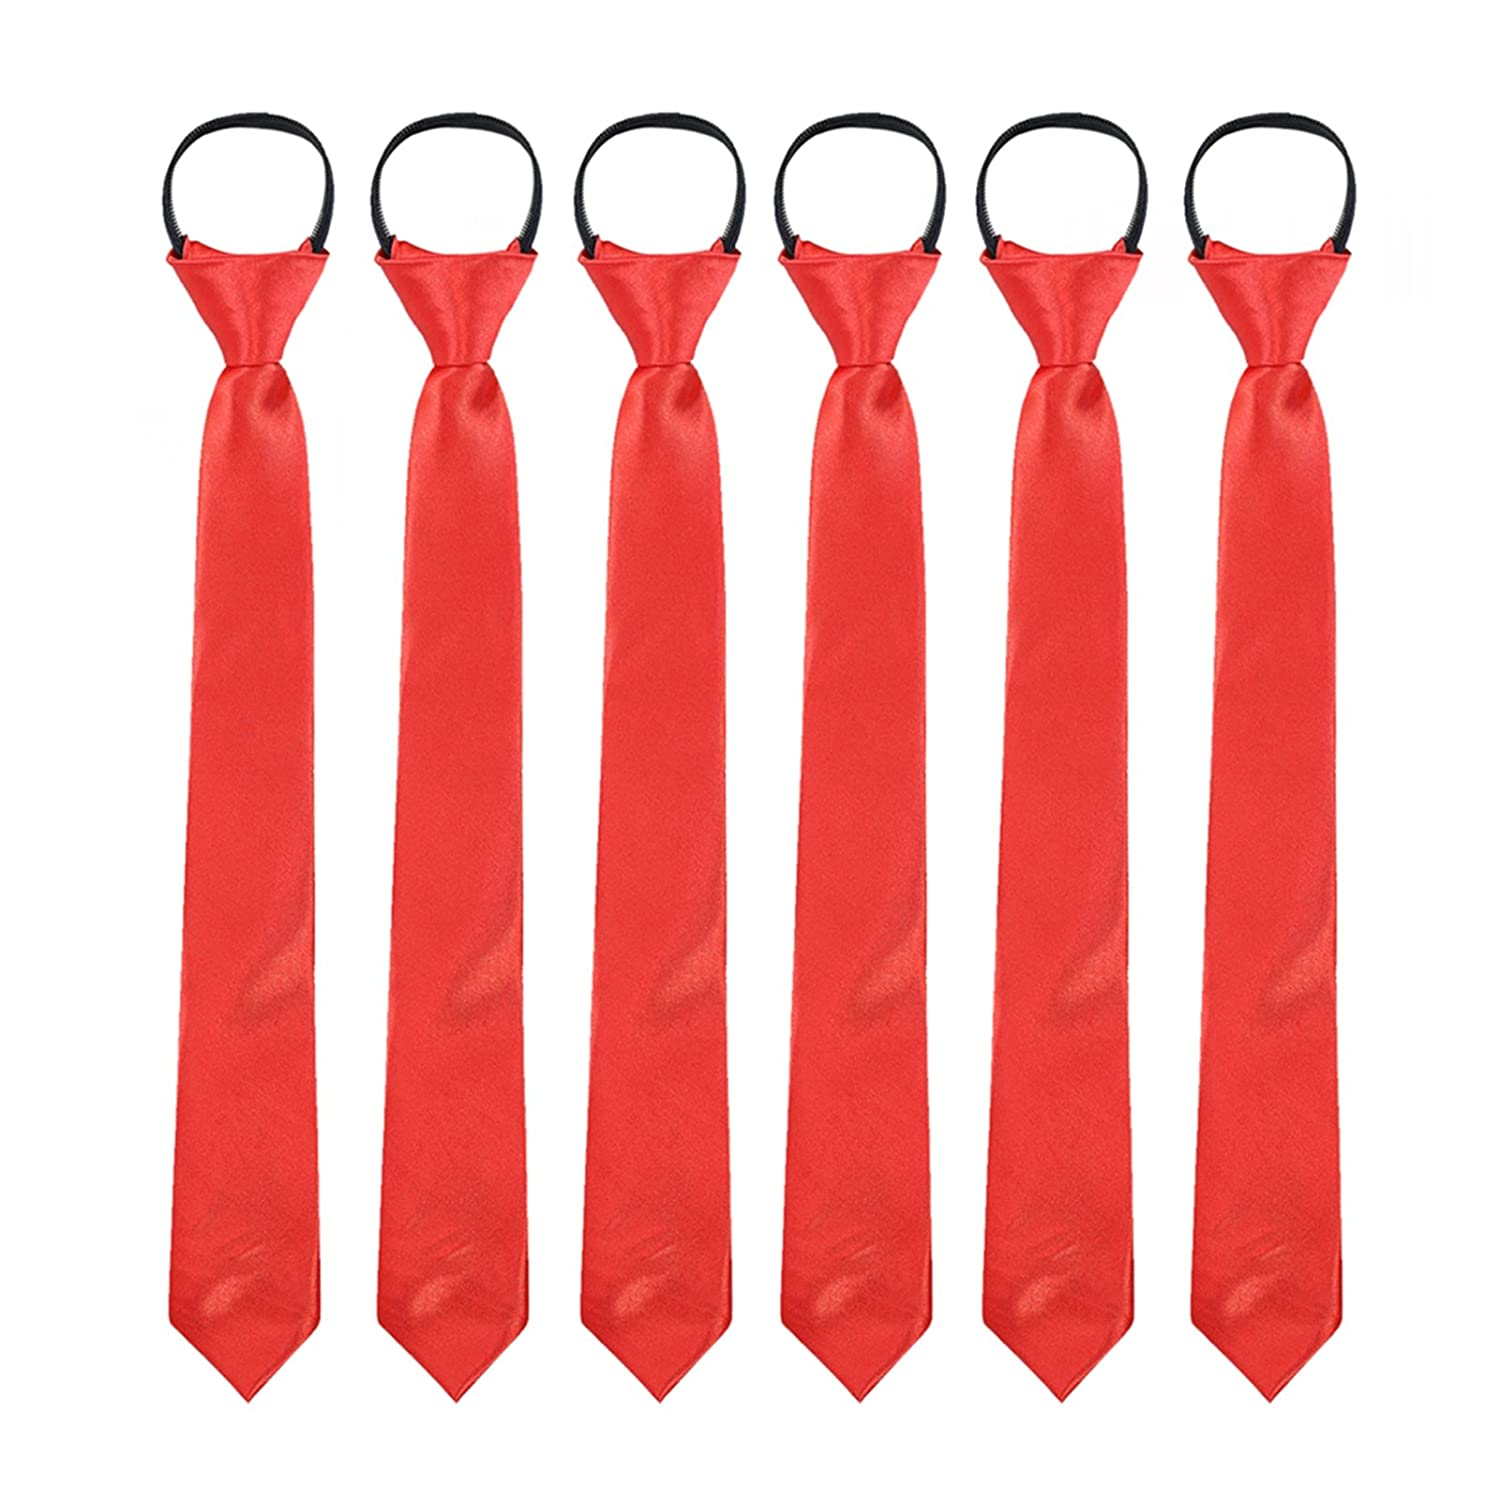 Toddlers Boys Zipper Ties Necktie - 6PCS Solid Color Adjustable Tie for Party (Pink) Jerrybaby